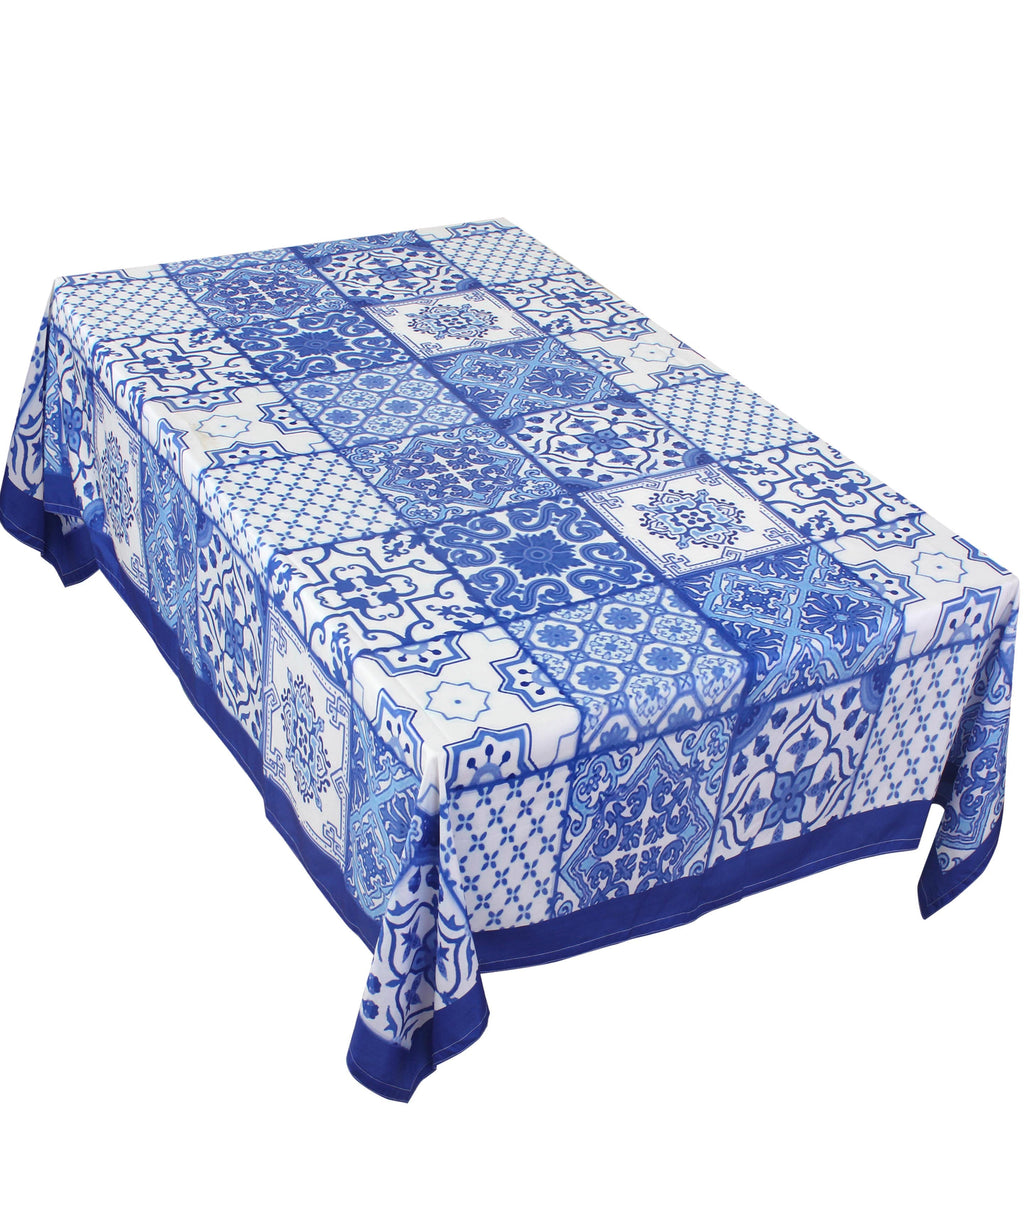 The Blue Knight Table Cover